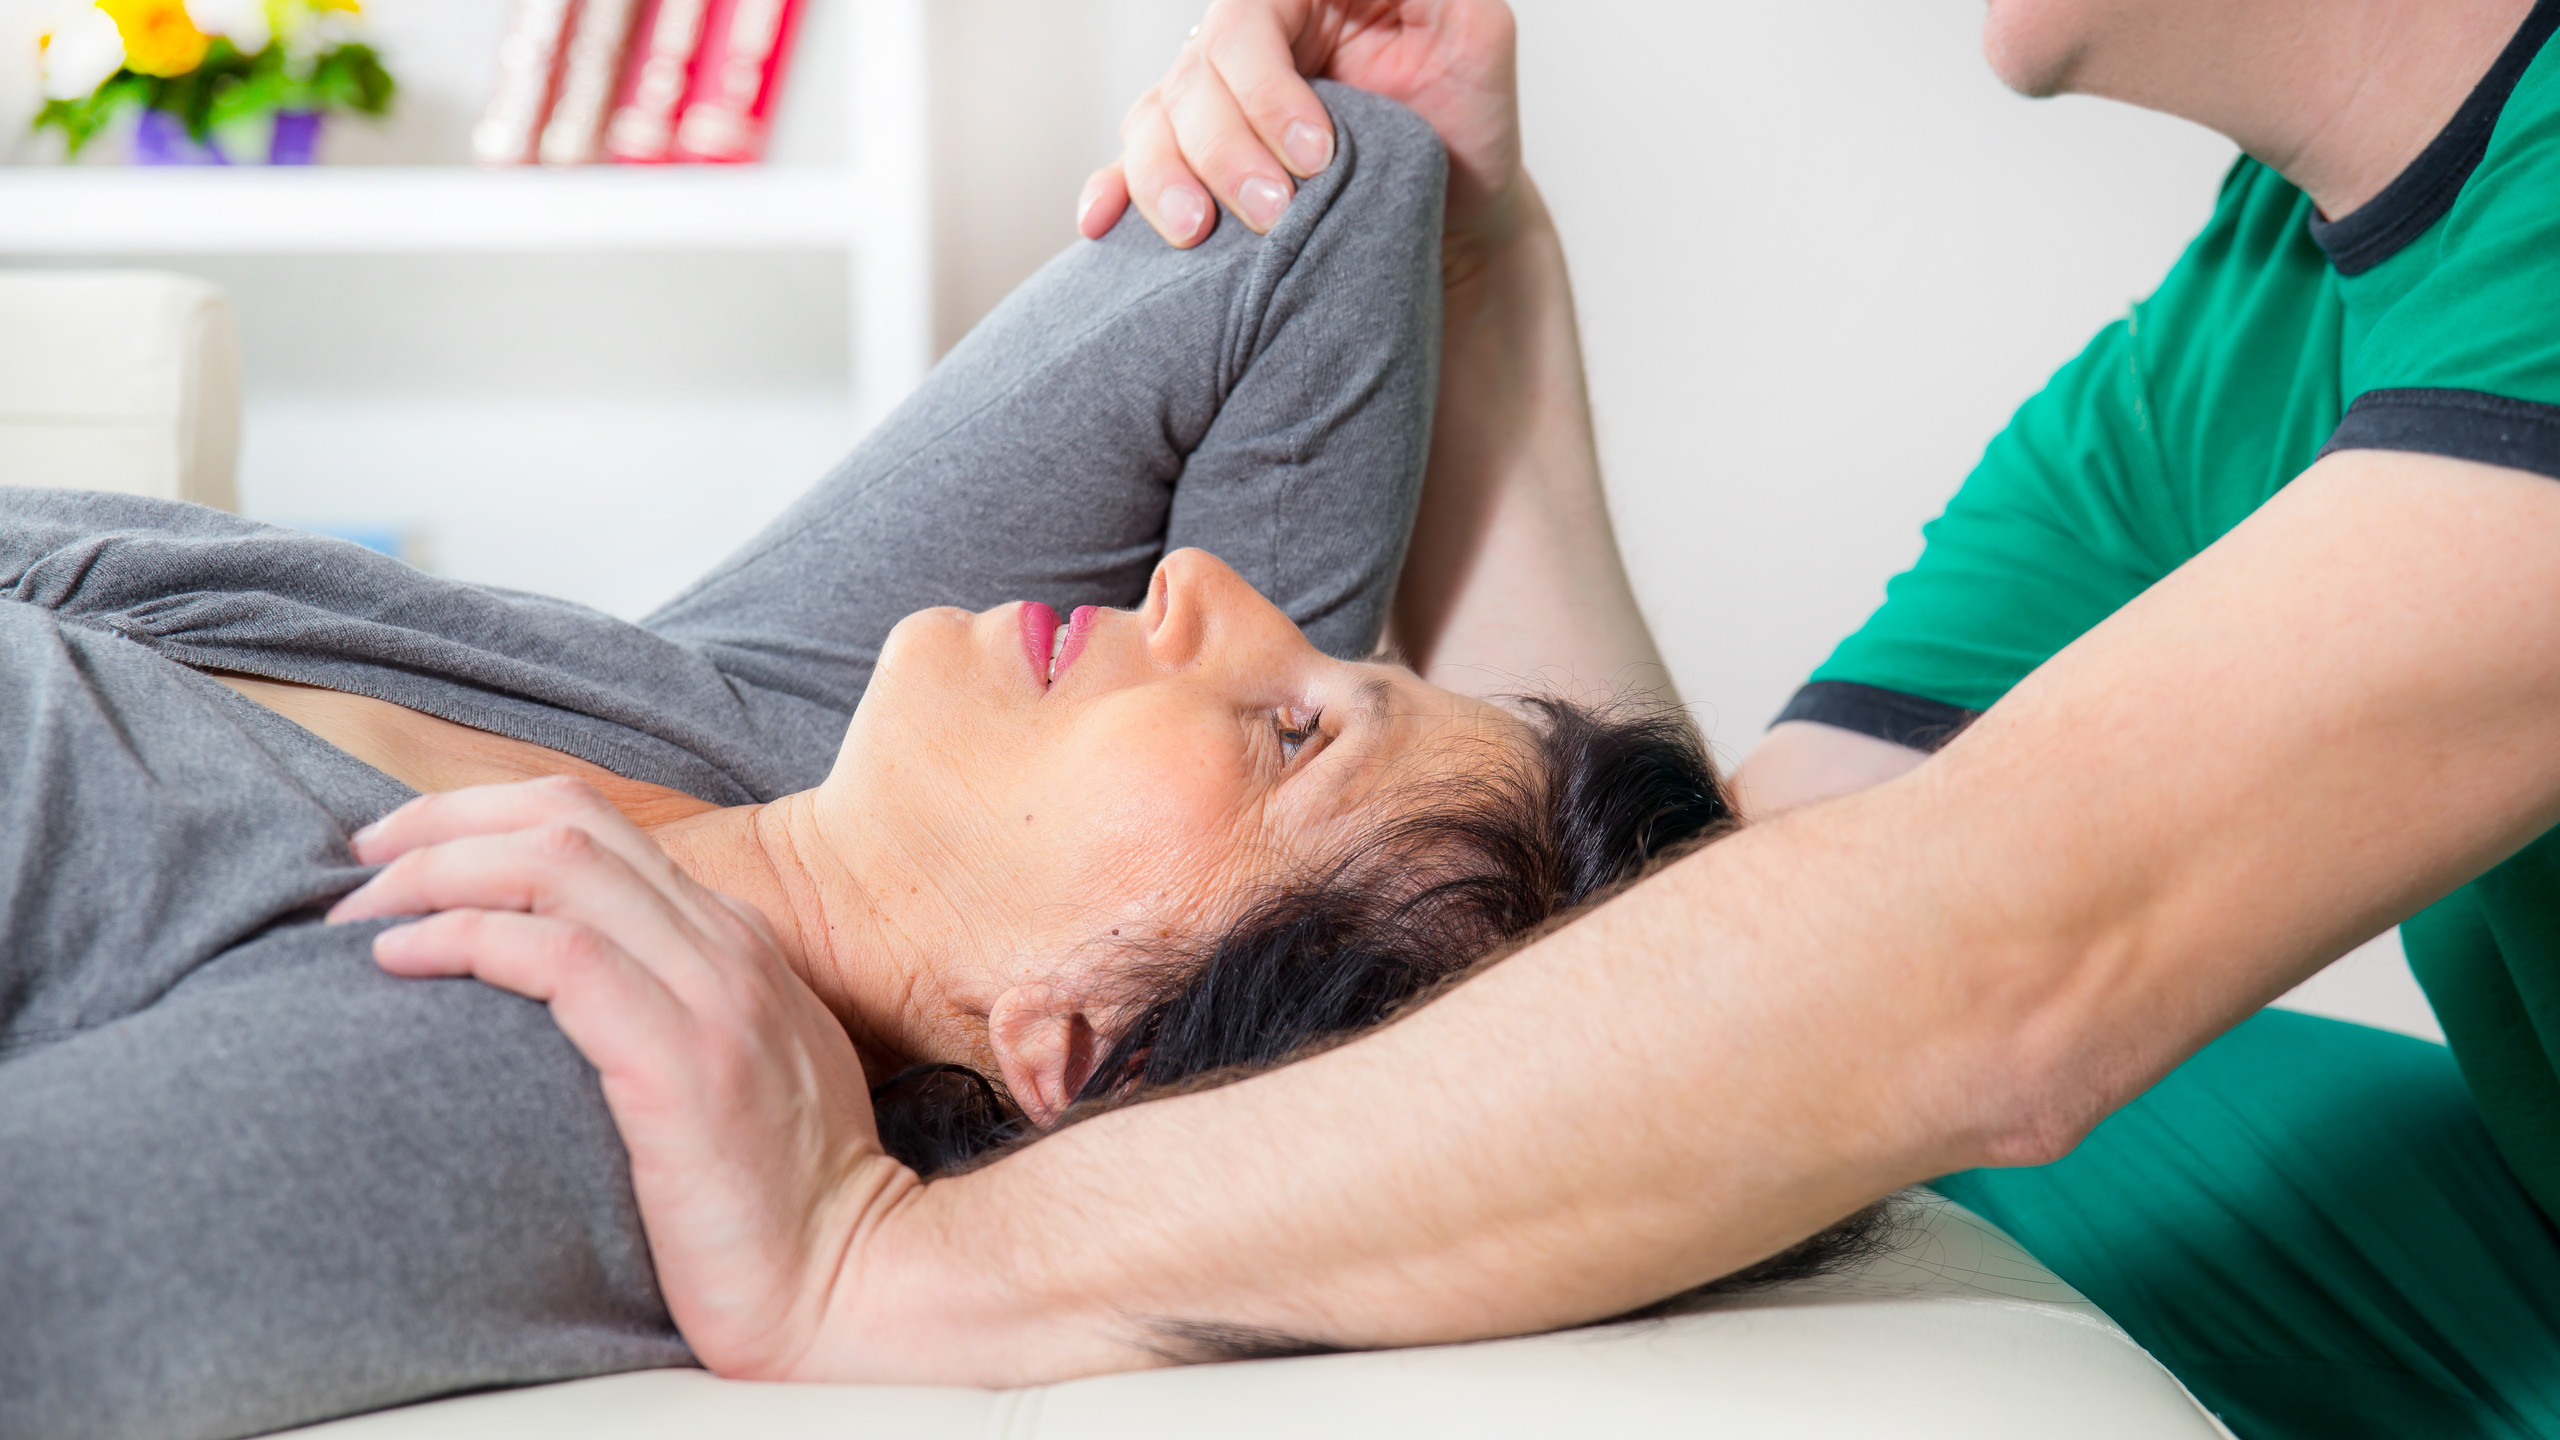 Canva - Chiropractor stretches female pa